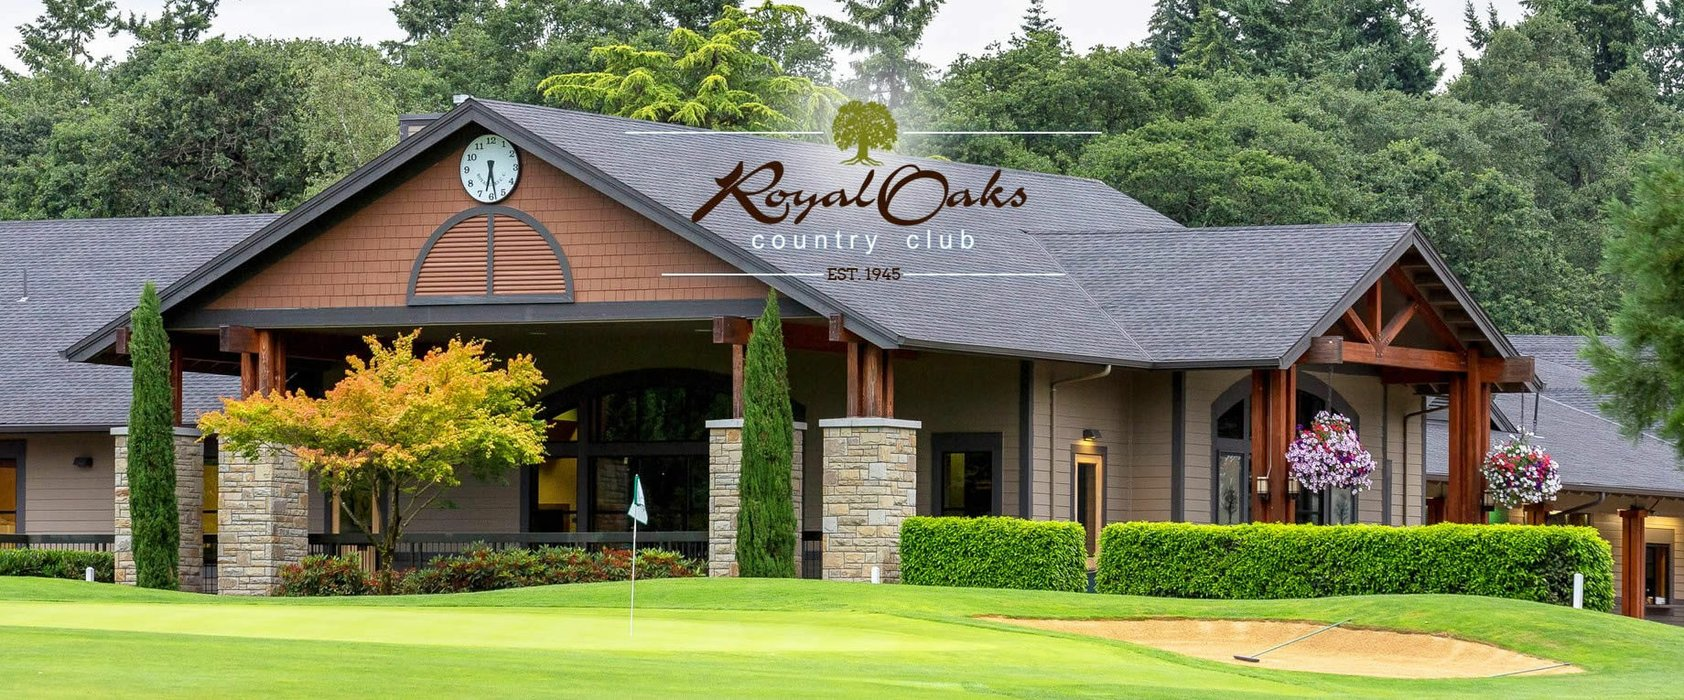 Royal Oaks Country Club's profile image